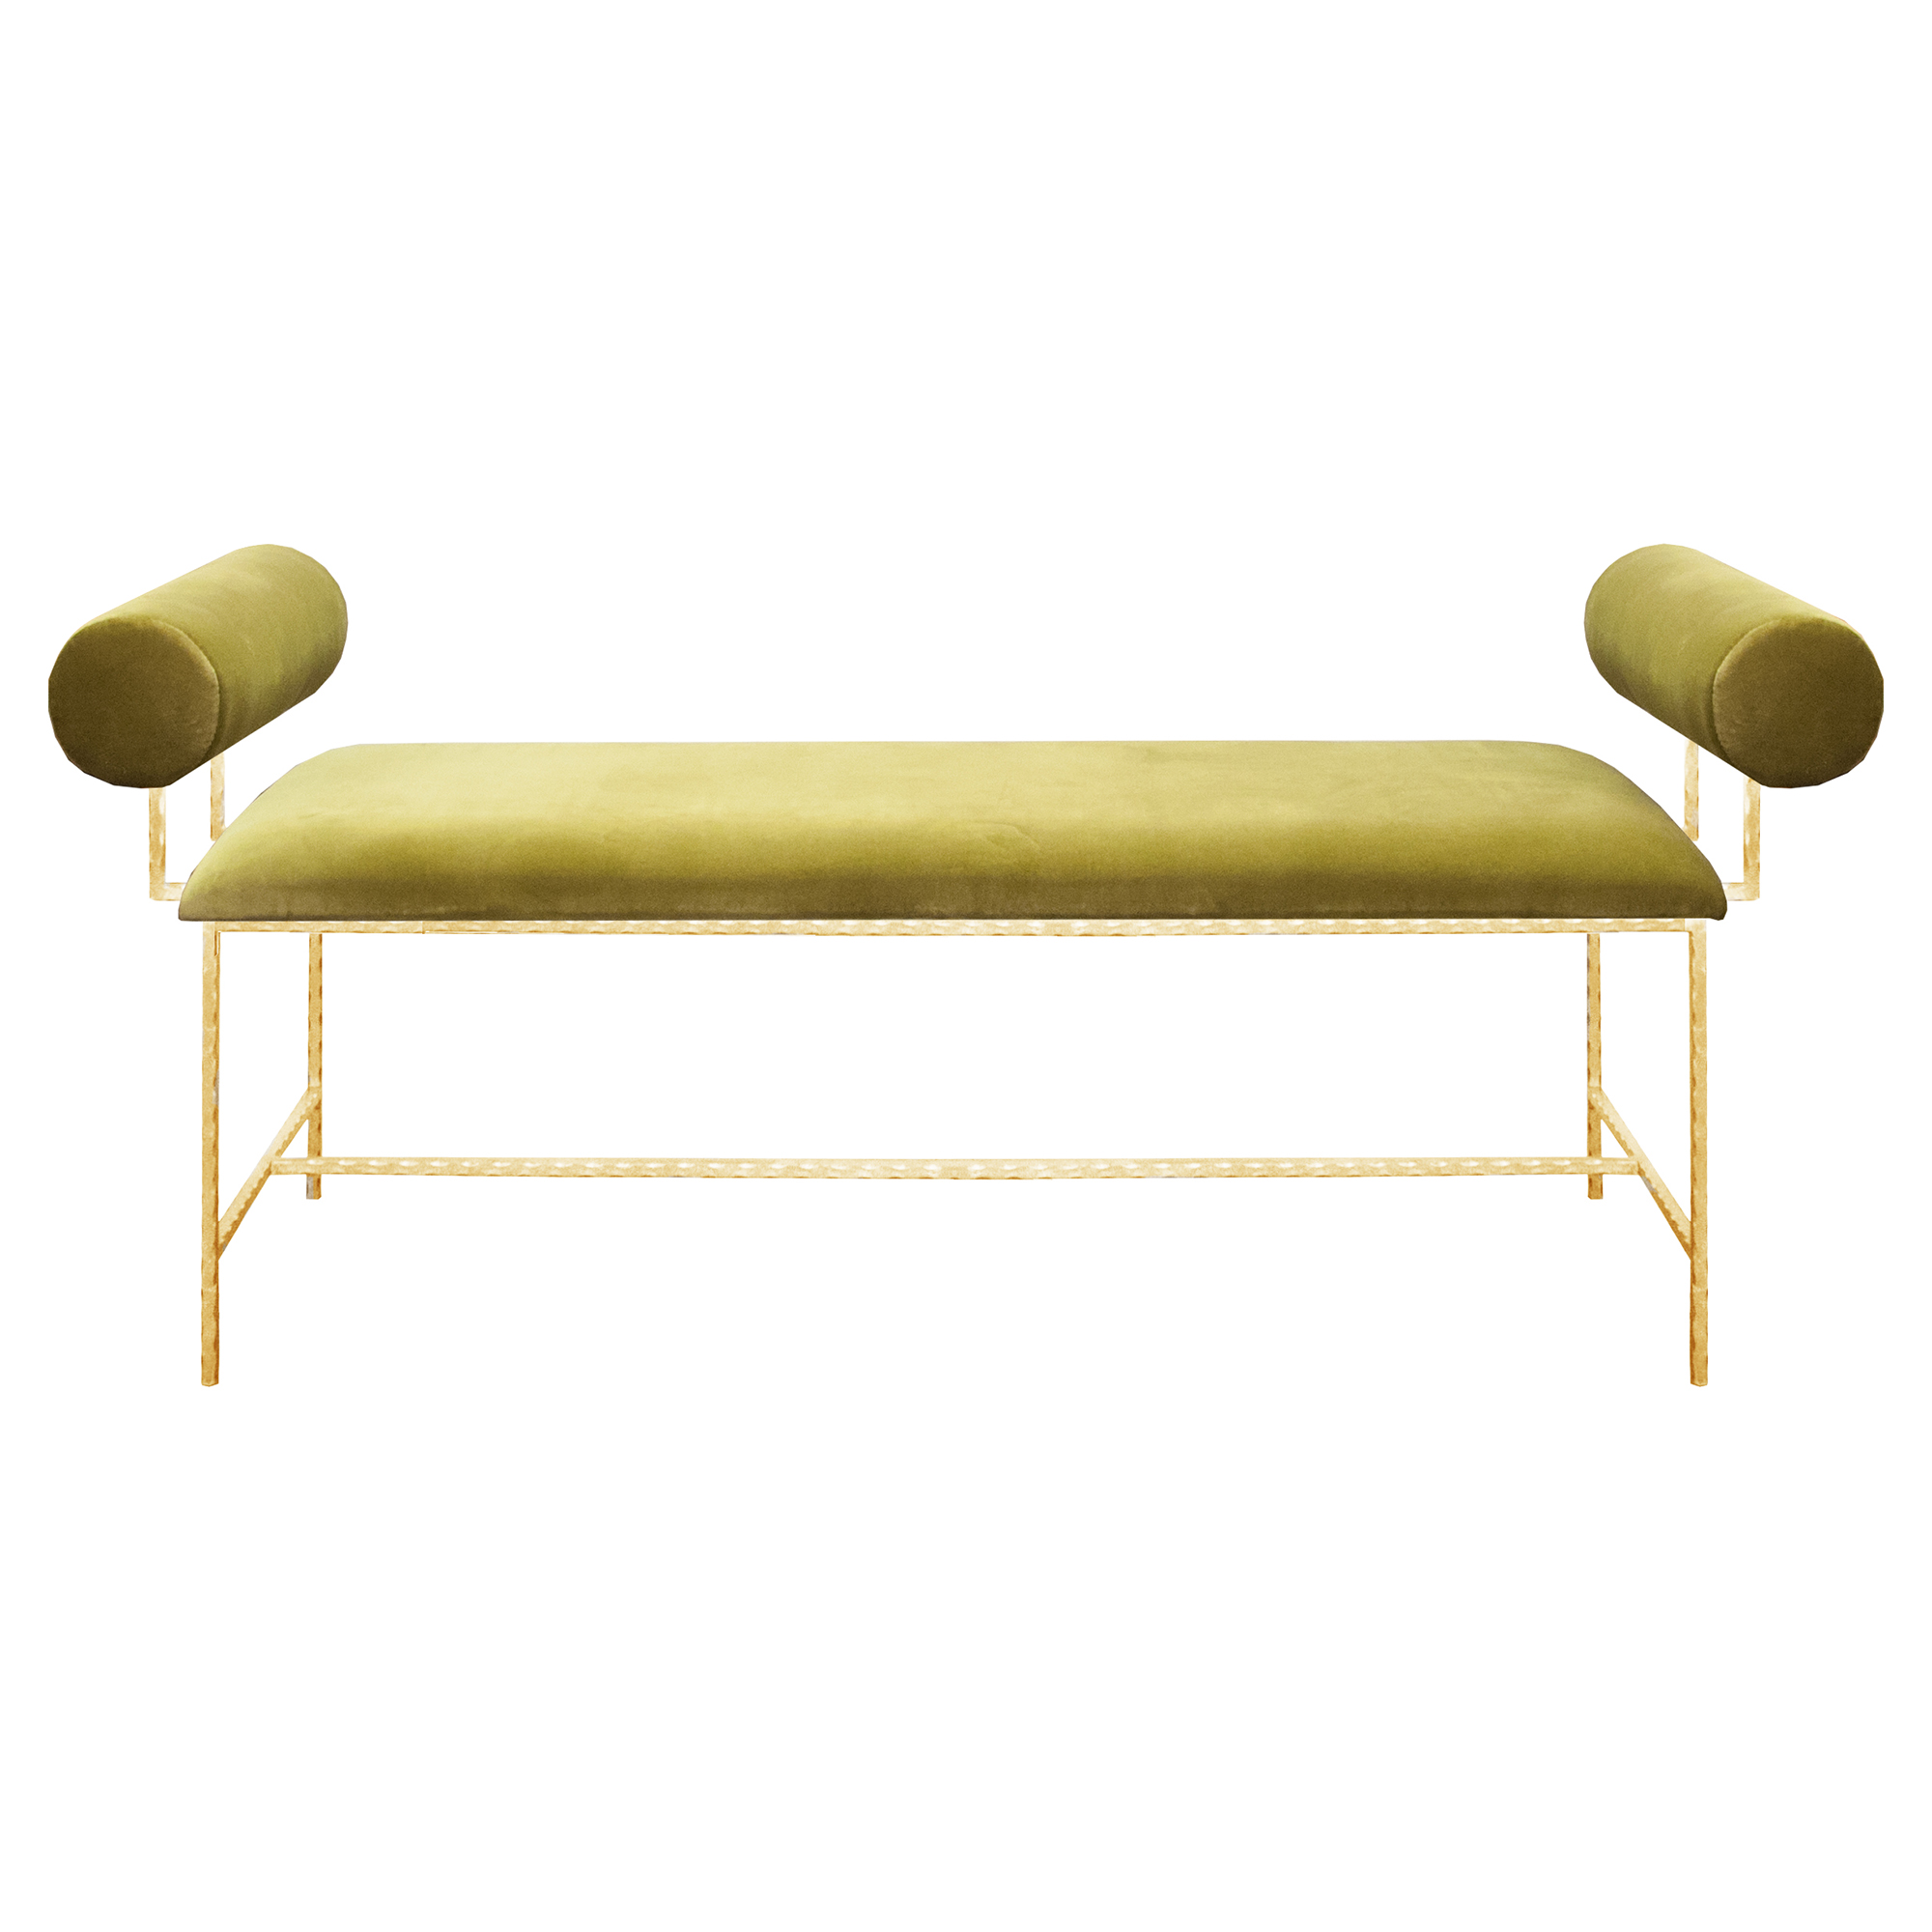 Bilson Modern Bolster Arm Green Velvet Gold Bench